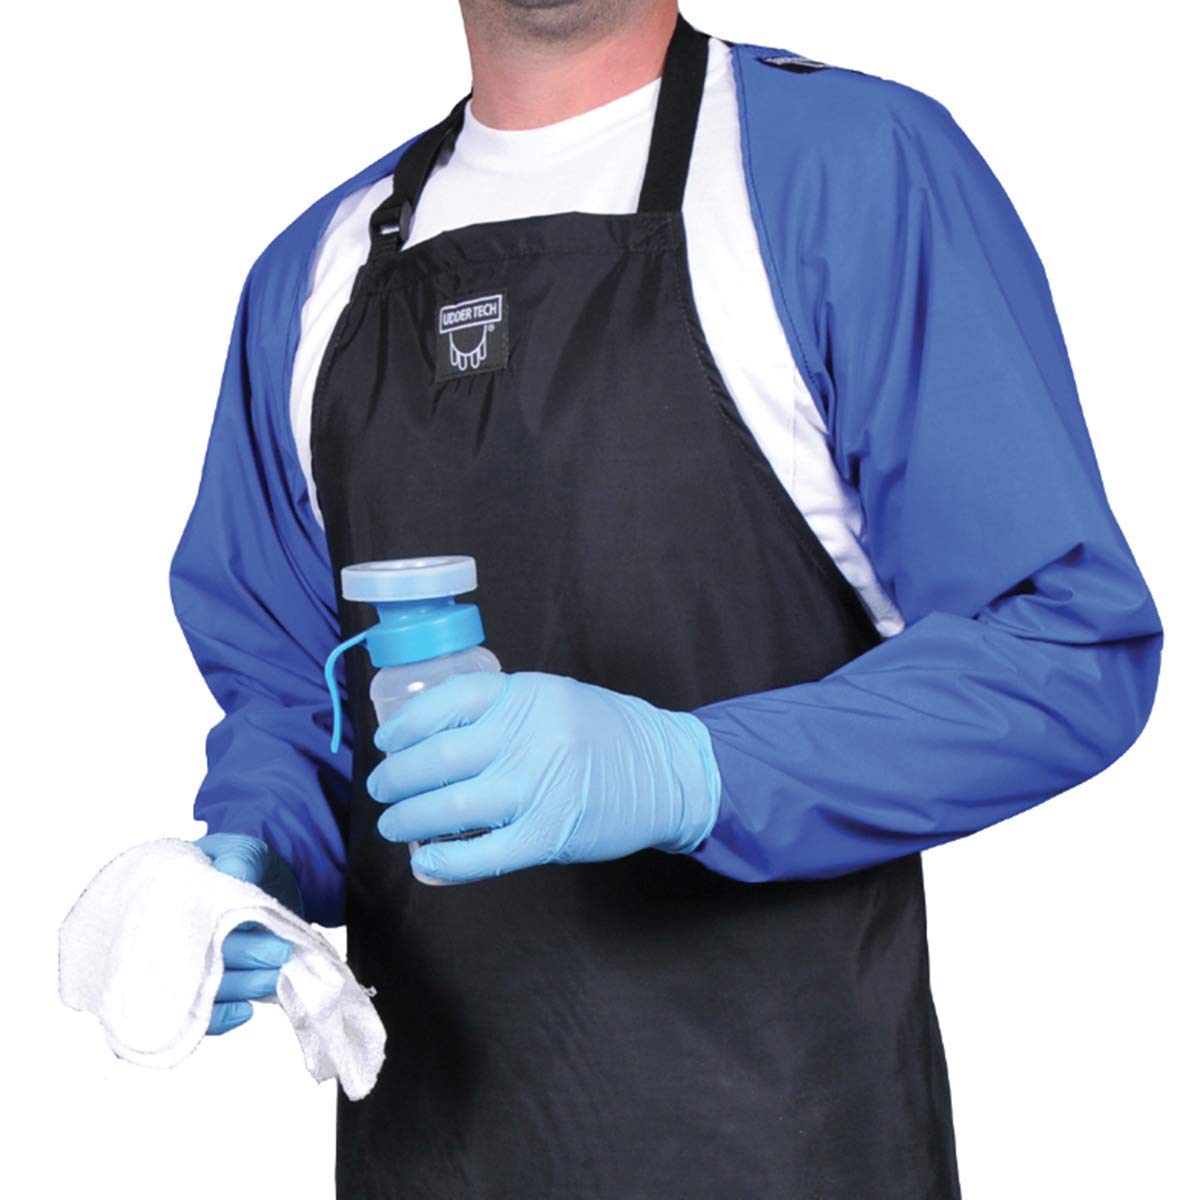 Waterproof Milking Sleeve Duo with Thumb Hole, Regular, Blue by Udder Tech